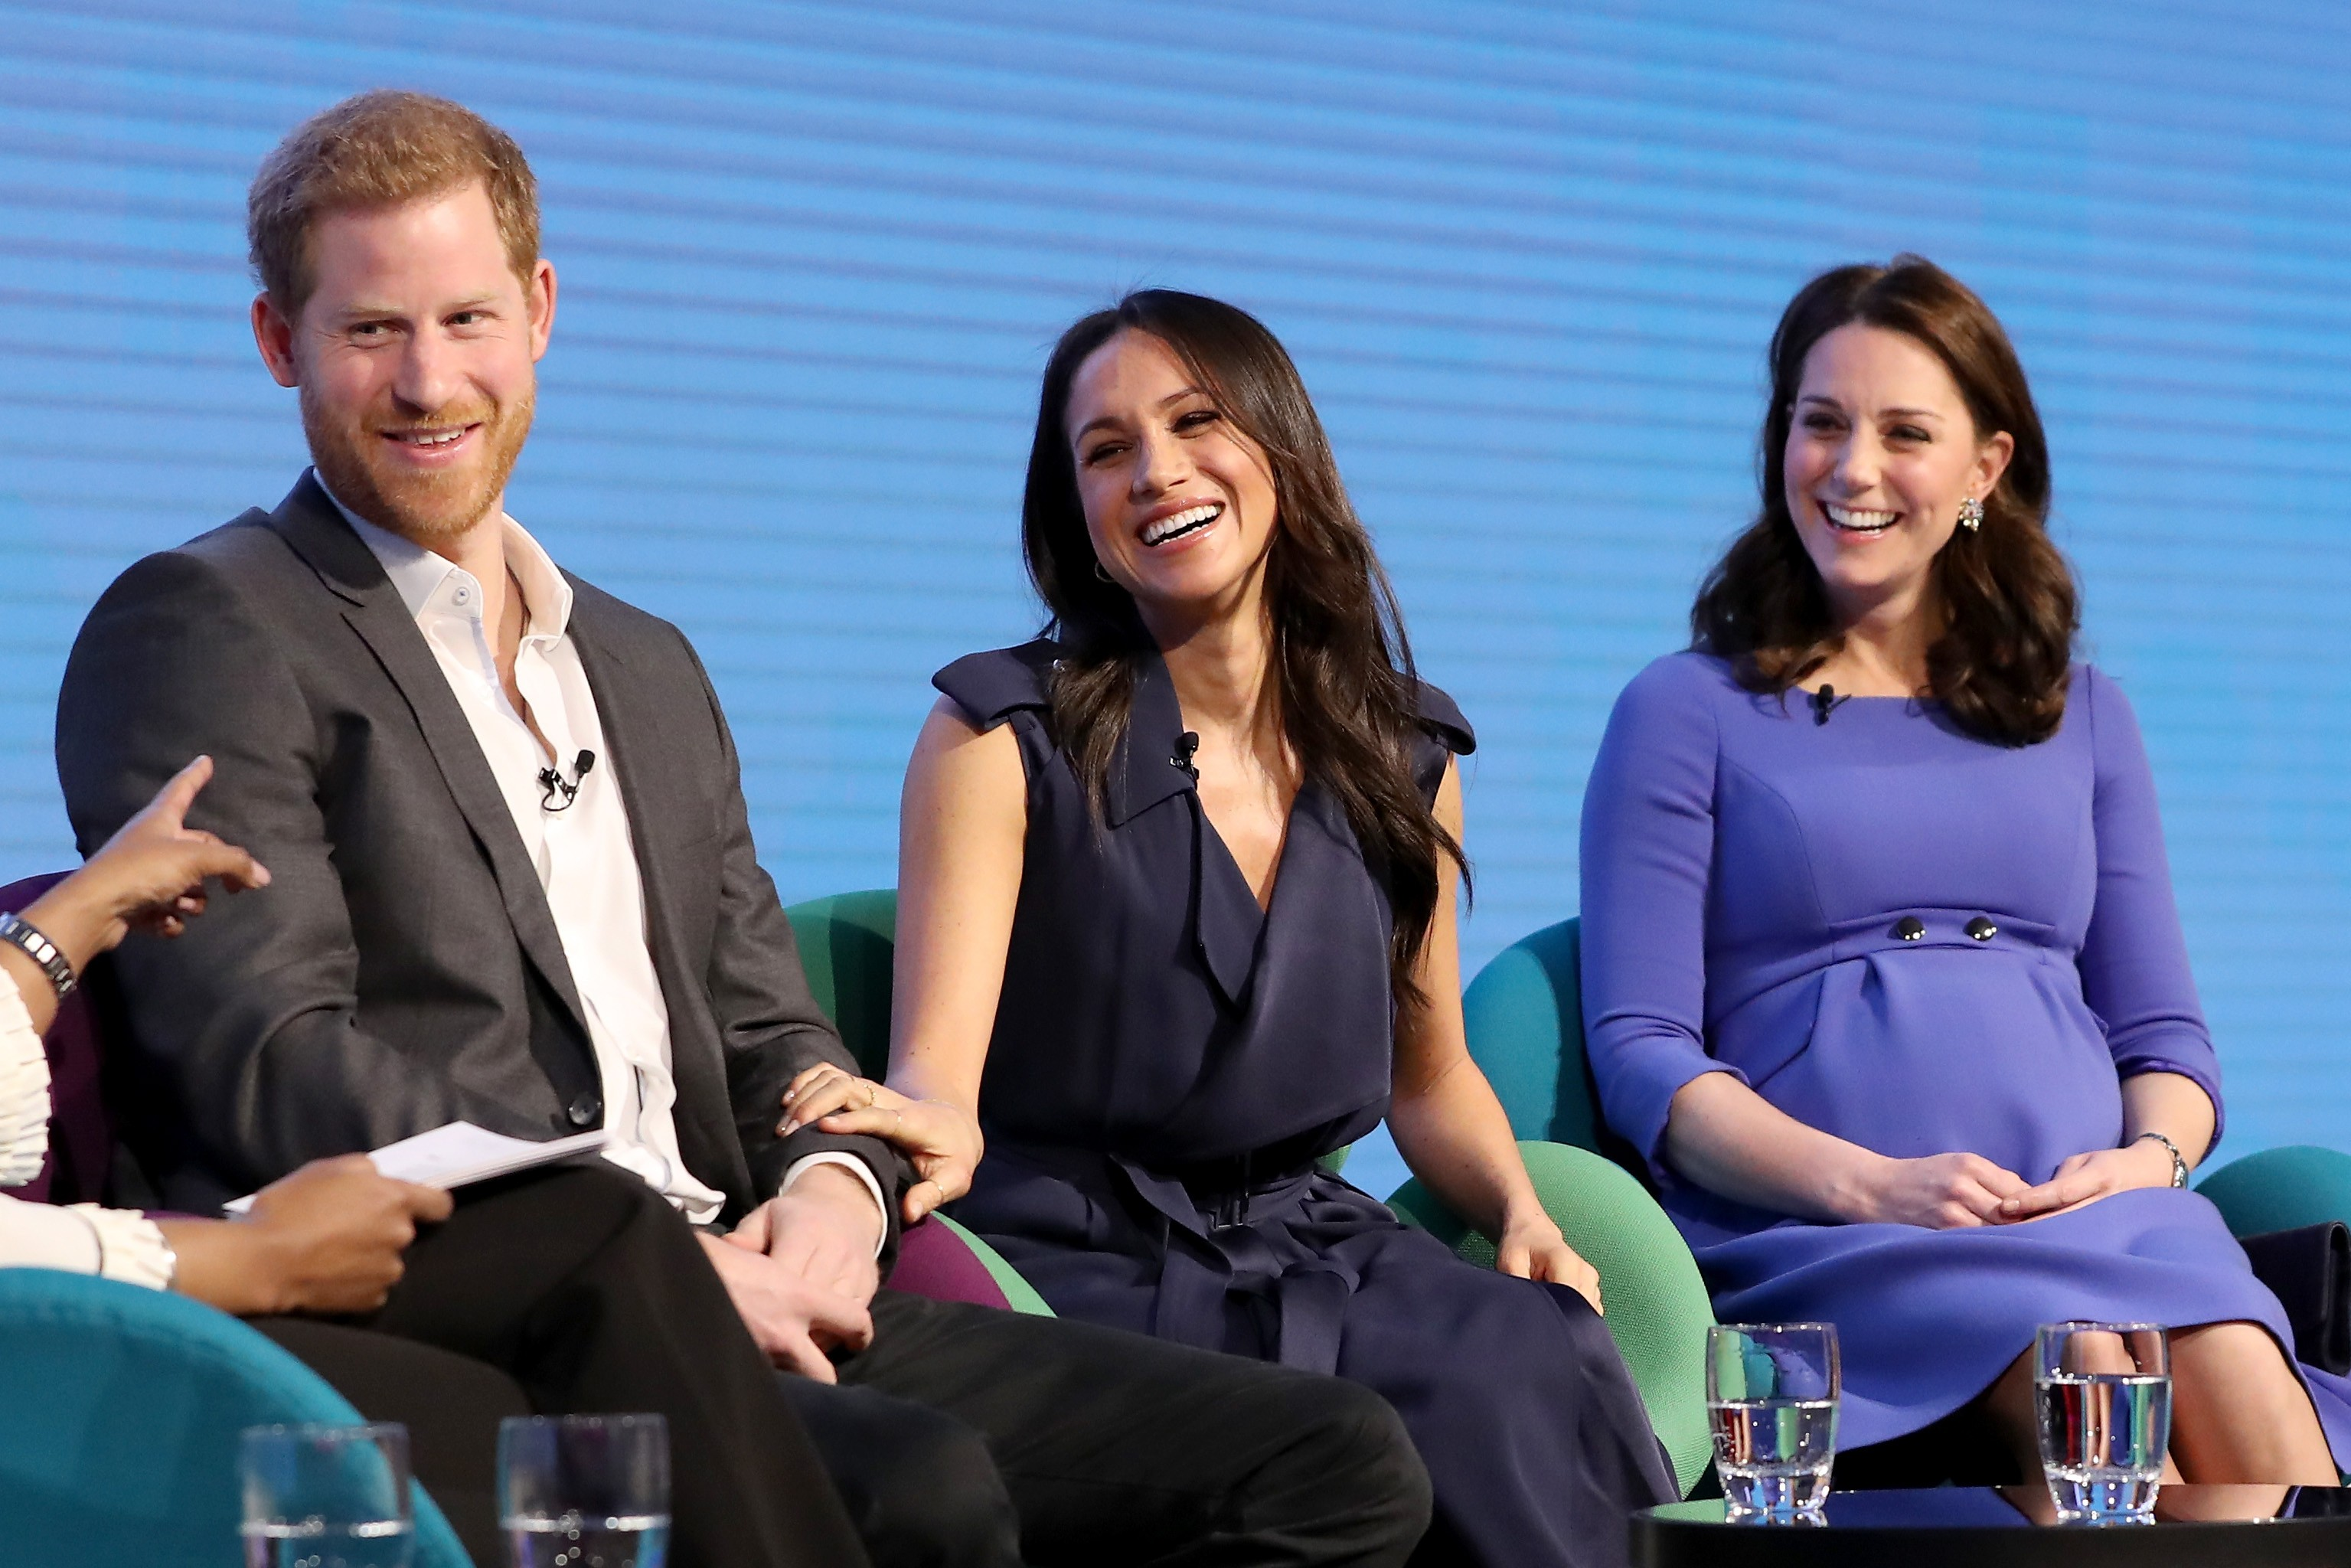 LONDON, ENGLAND - FEBRUARY 28:  Prince Harry, Meghan Markle and Catherine, Duchess of Cambridge attend the first annual Royal Foundation Forum held at Aviva on February 28, 2018 in London, England. Under the theme 'Making a Difference Together', the event will showcase the programmes run or initiated by The Royal Foundation.  (Photo by Chris Jackson - WPA Pool/Getty Images)  Getty, TL